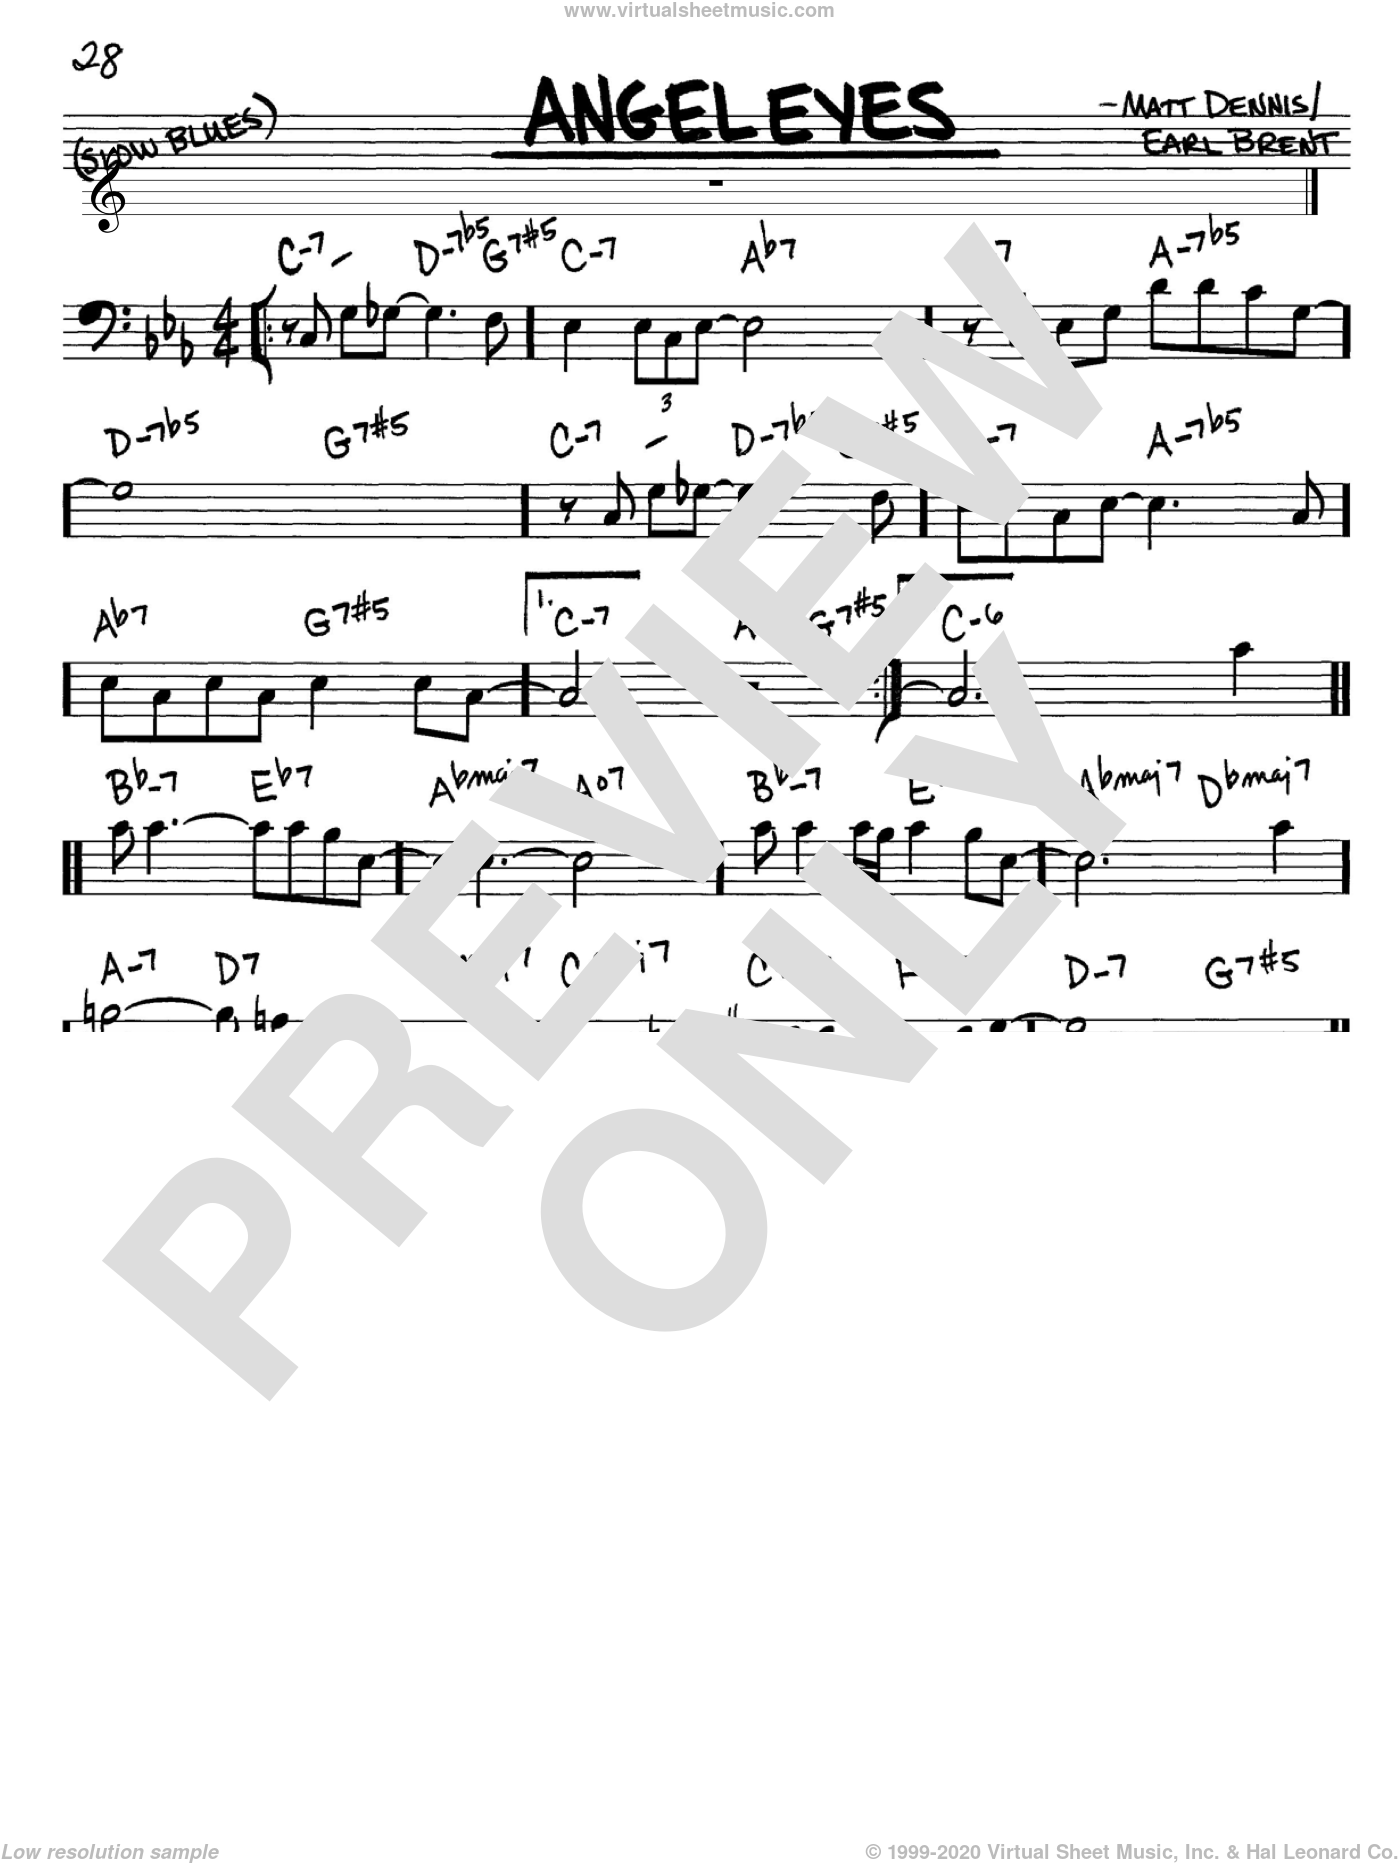 Angel Eyes sheet music for voice and other instruments (Bass Clef ) by Matt Dennis